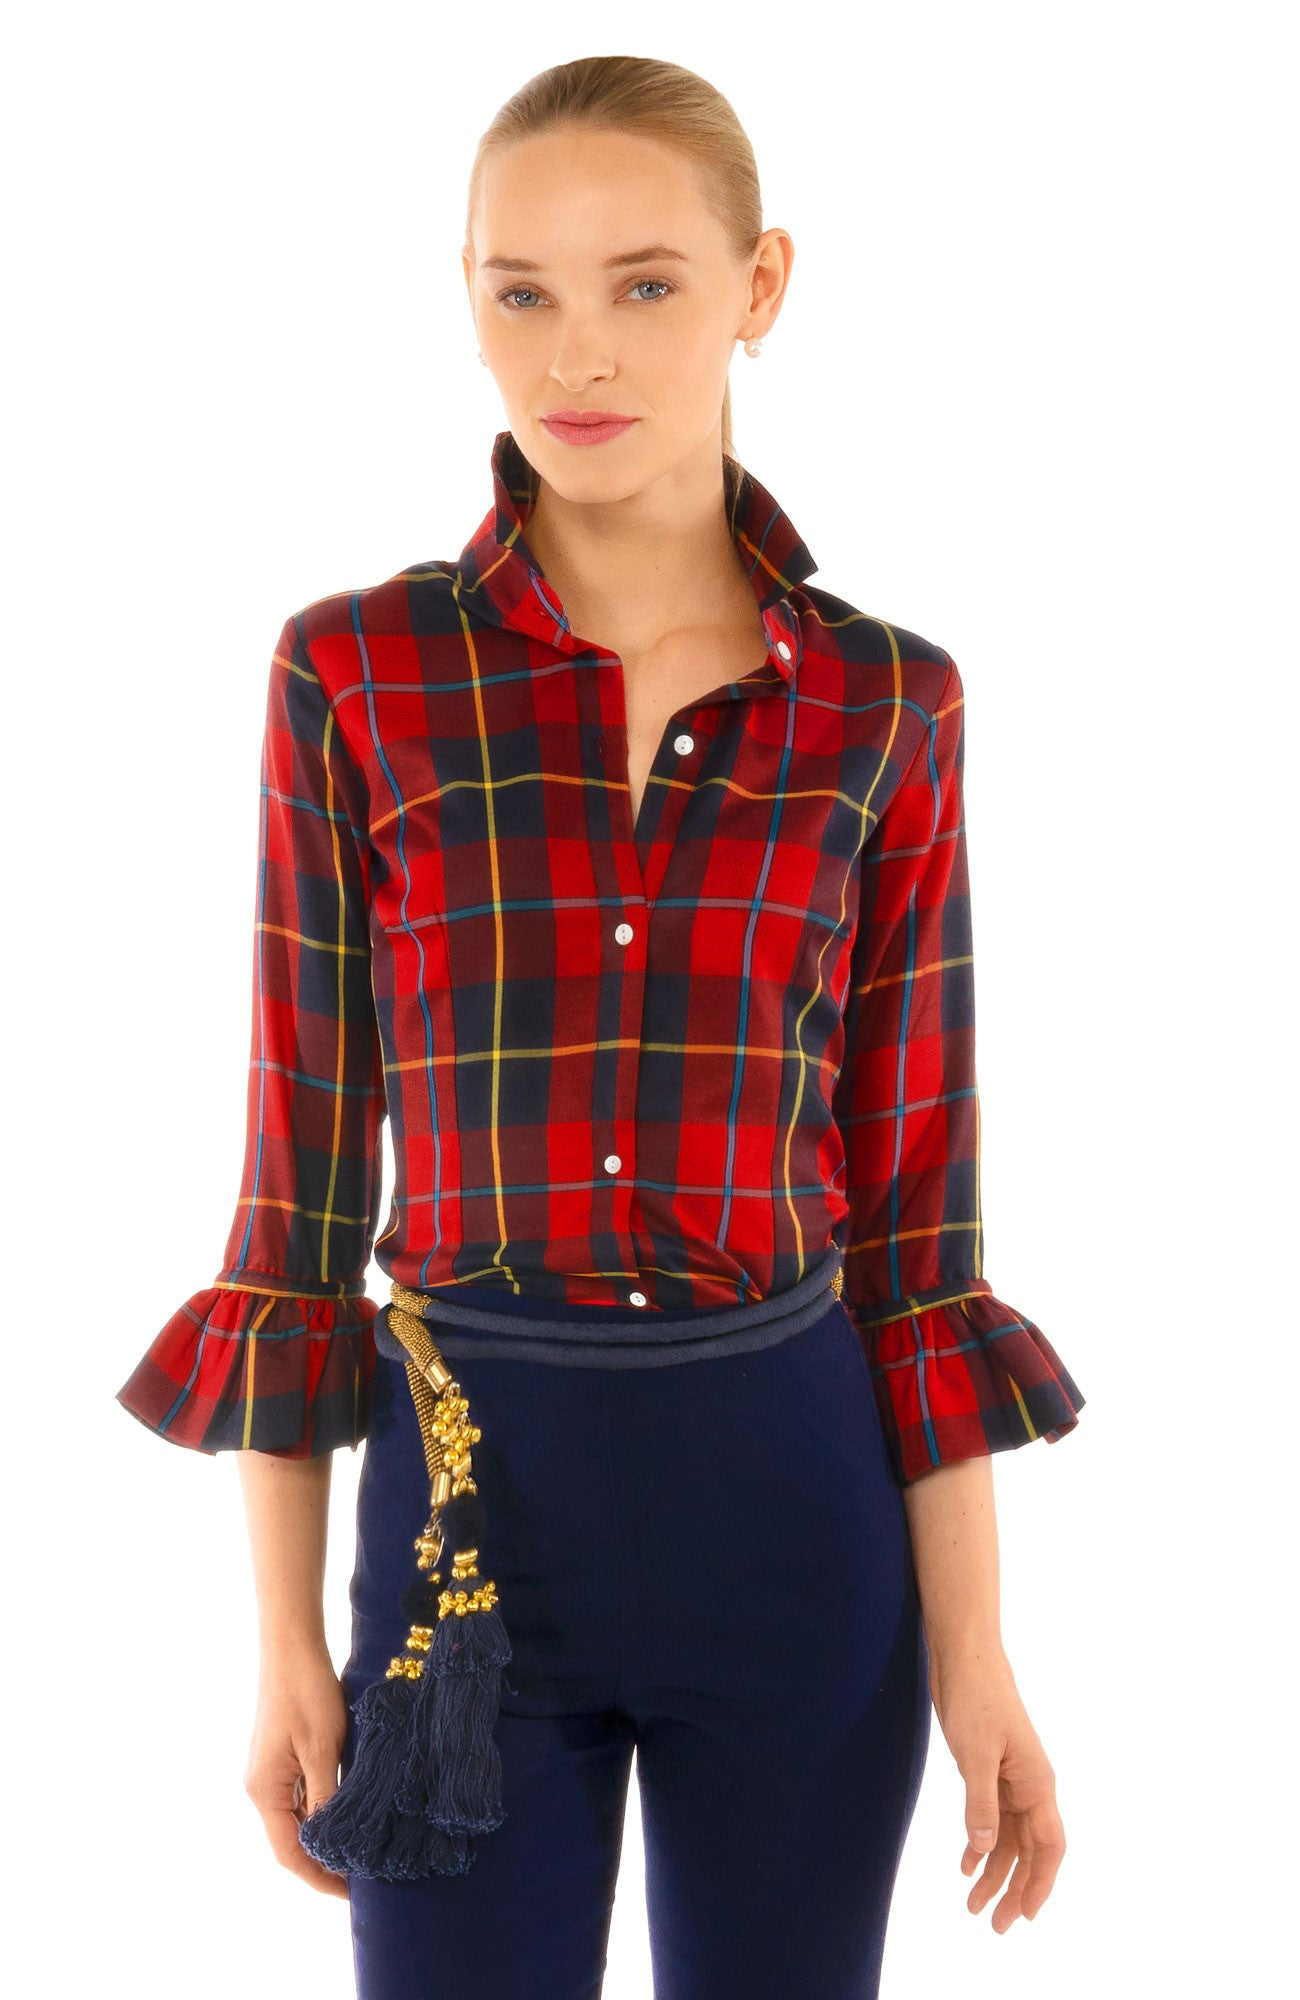 GRETCHEN SCOTT PRISS PLAIDLY COOPER BLOUSE